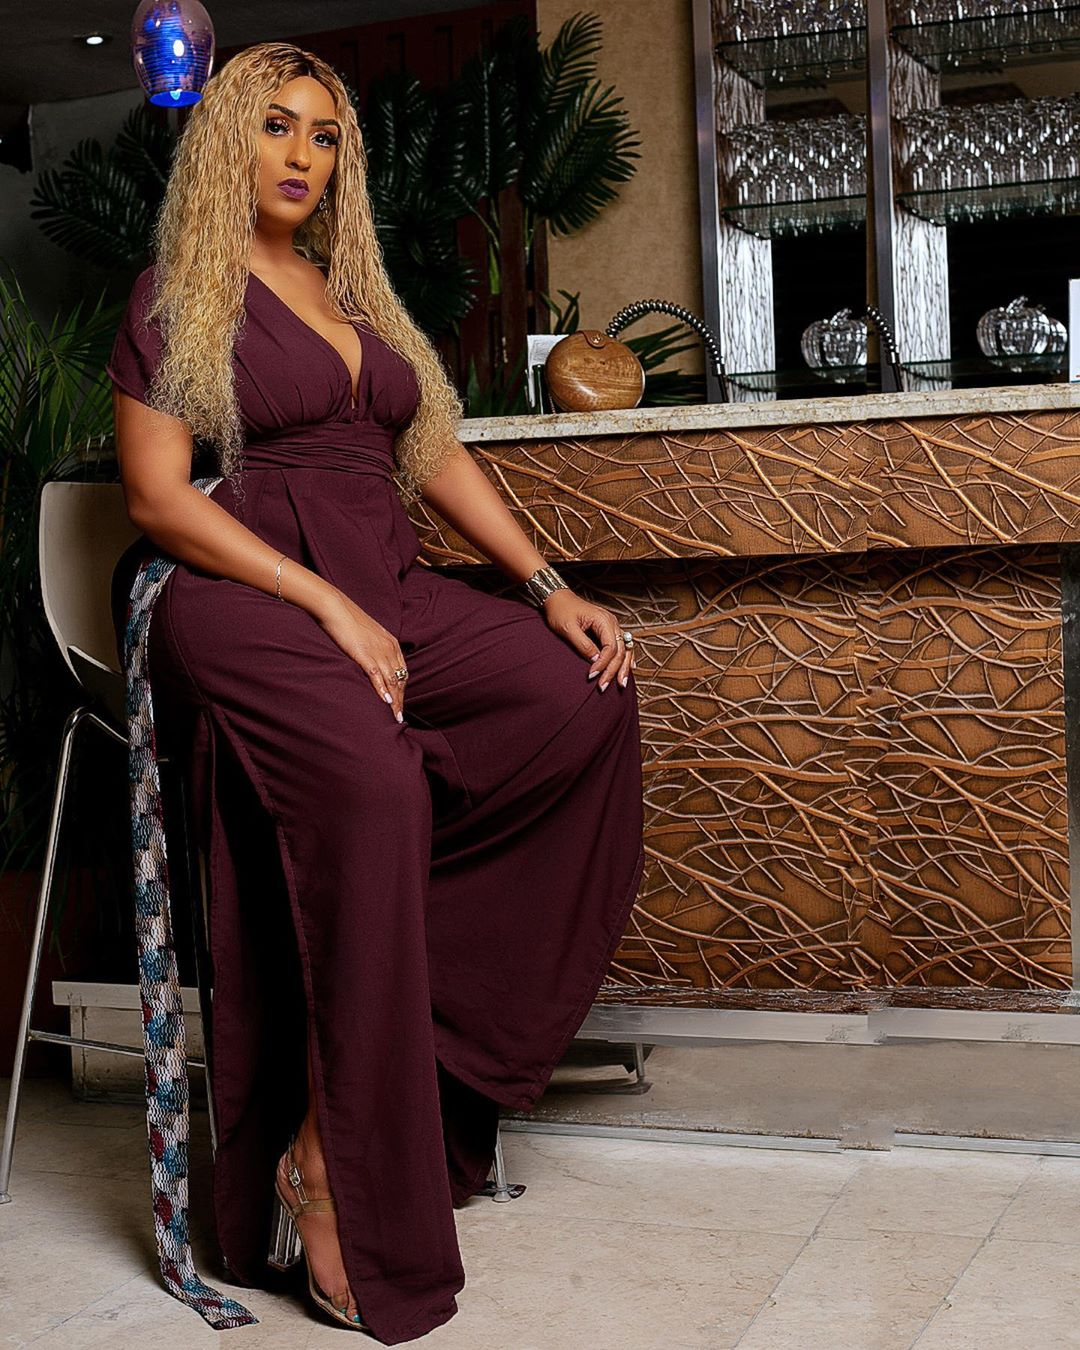 119085692 242630170413006 301374344320777841 n Love Your Whole Story Even if It Hasn't Been The Perfect Fairy Tale – Juliet Ibrahim Preaches About Self Love